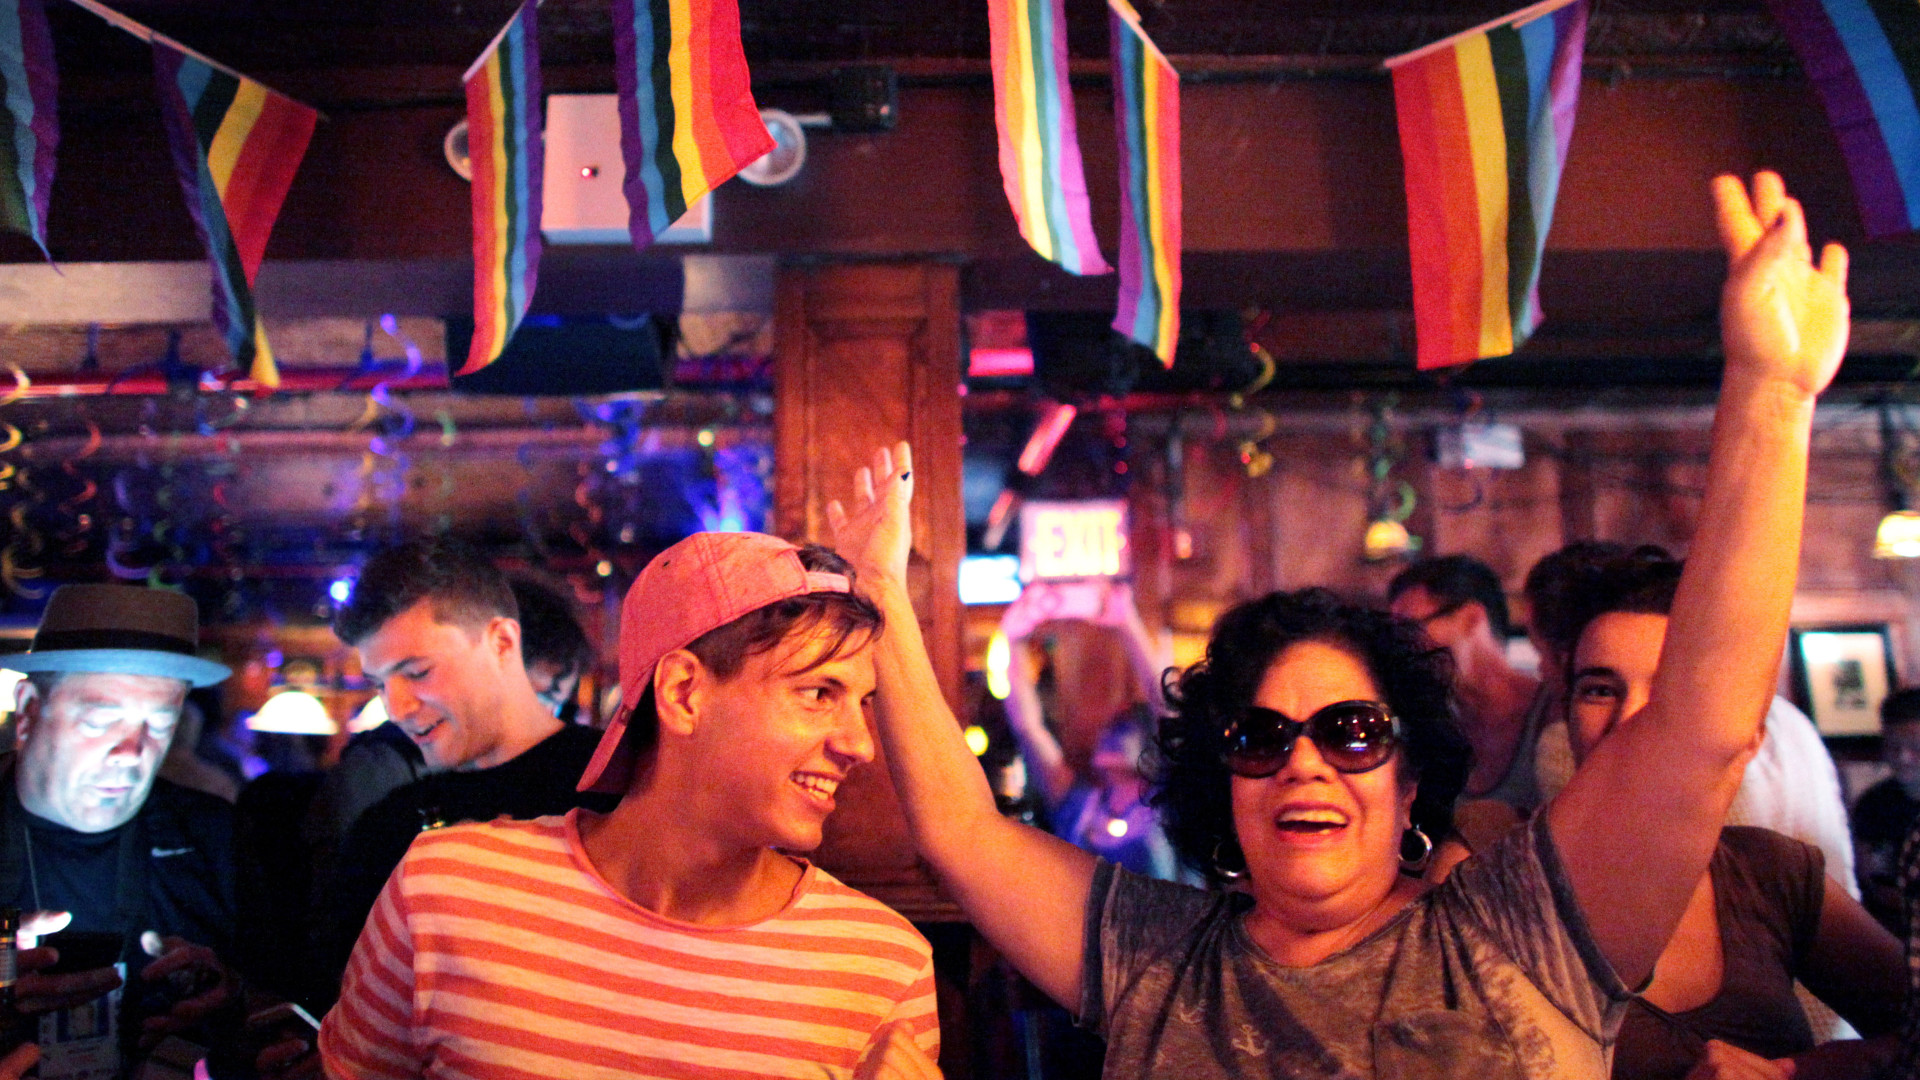 People celebrate inside the Stonewall Inn, an iconic gay bar recently granted historic landmark status, after the U.S. Supreme Court ruled same-sex couples have the right marry in all 50 states.